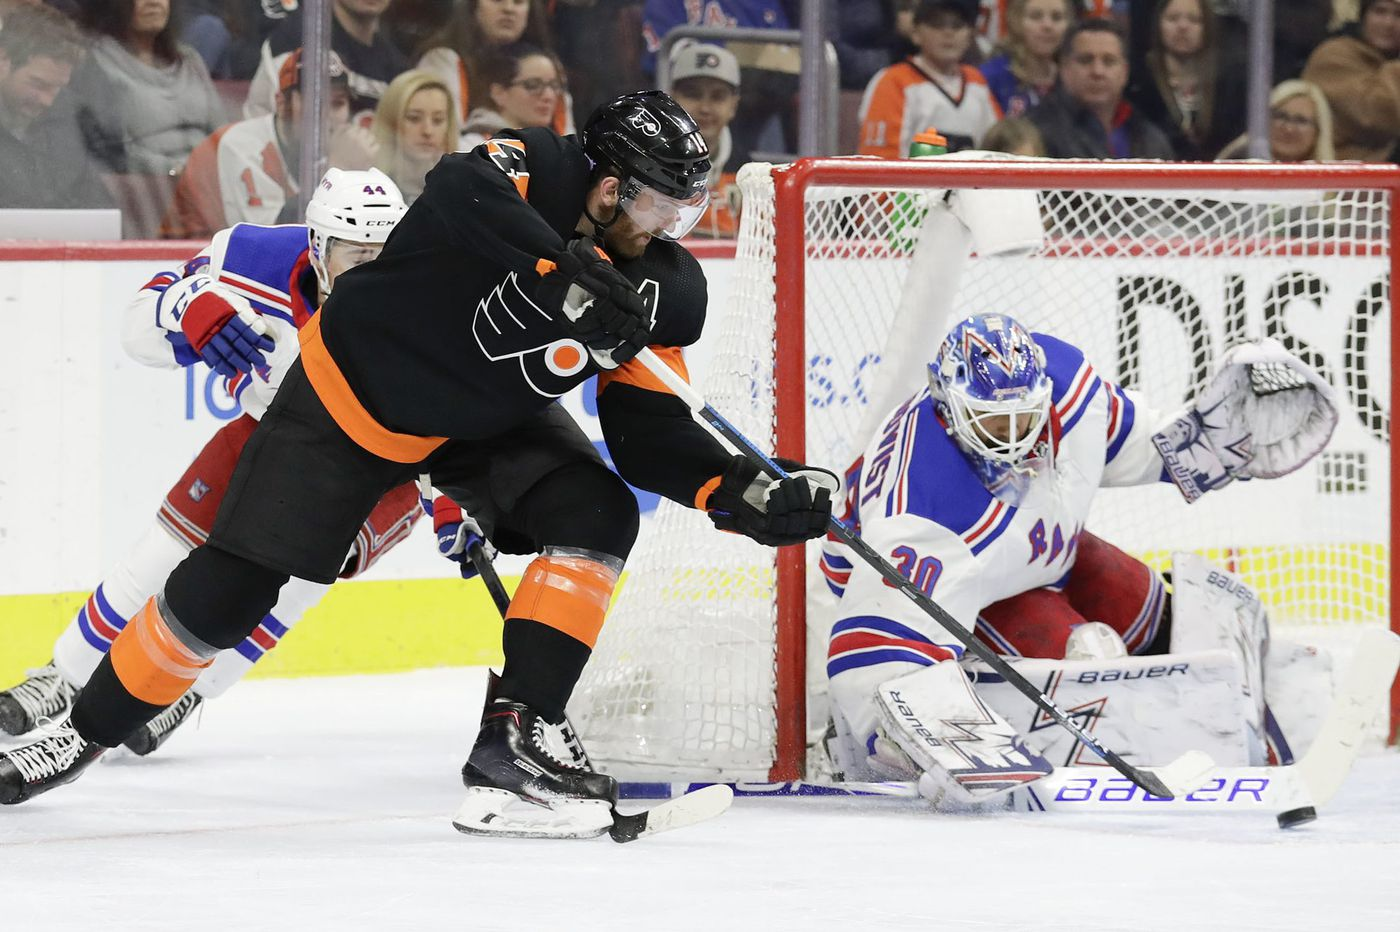 Flyers end skid by blanking Rangers